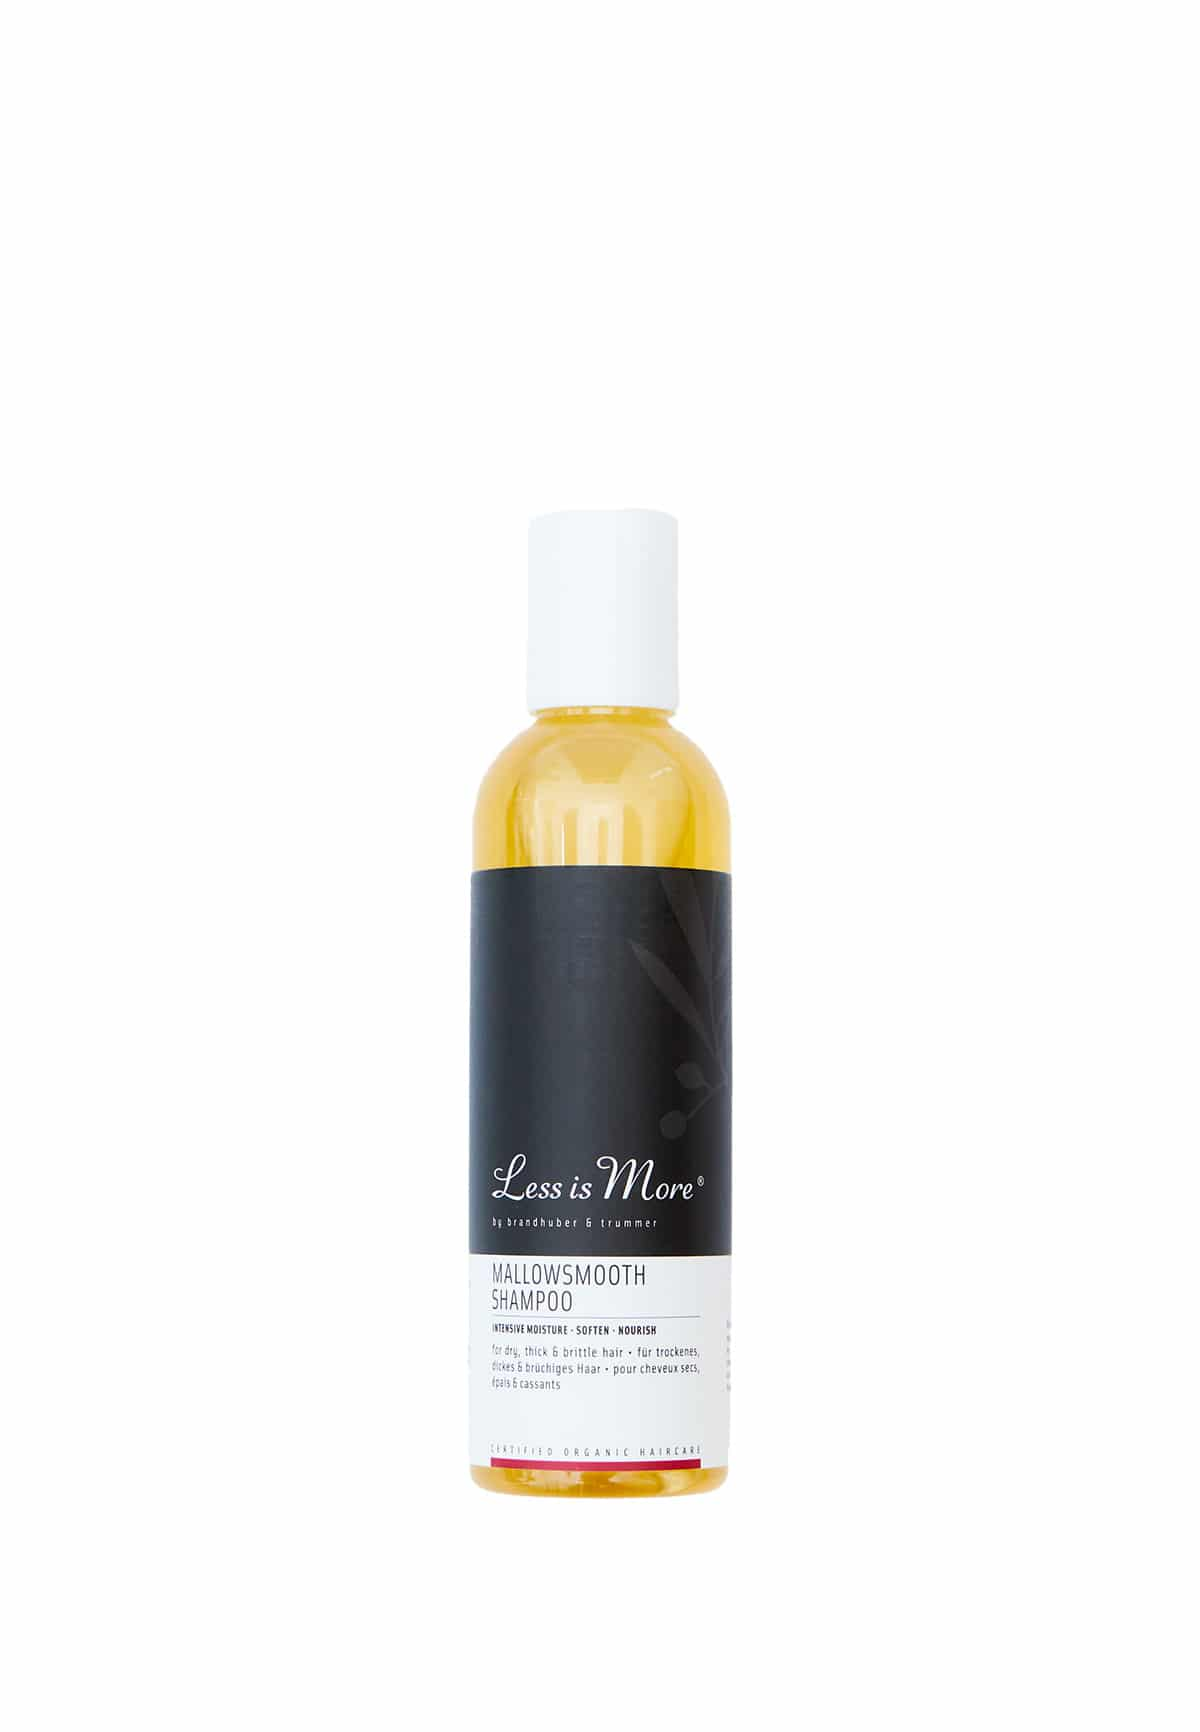 Less is More Mallowsmooth Shampoo